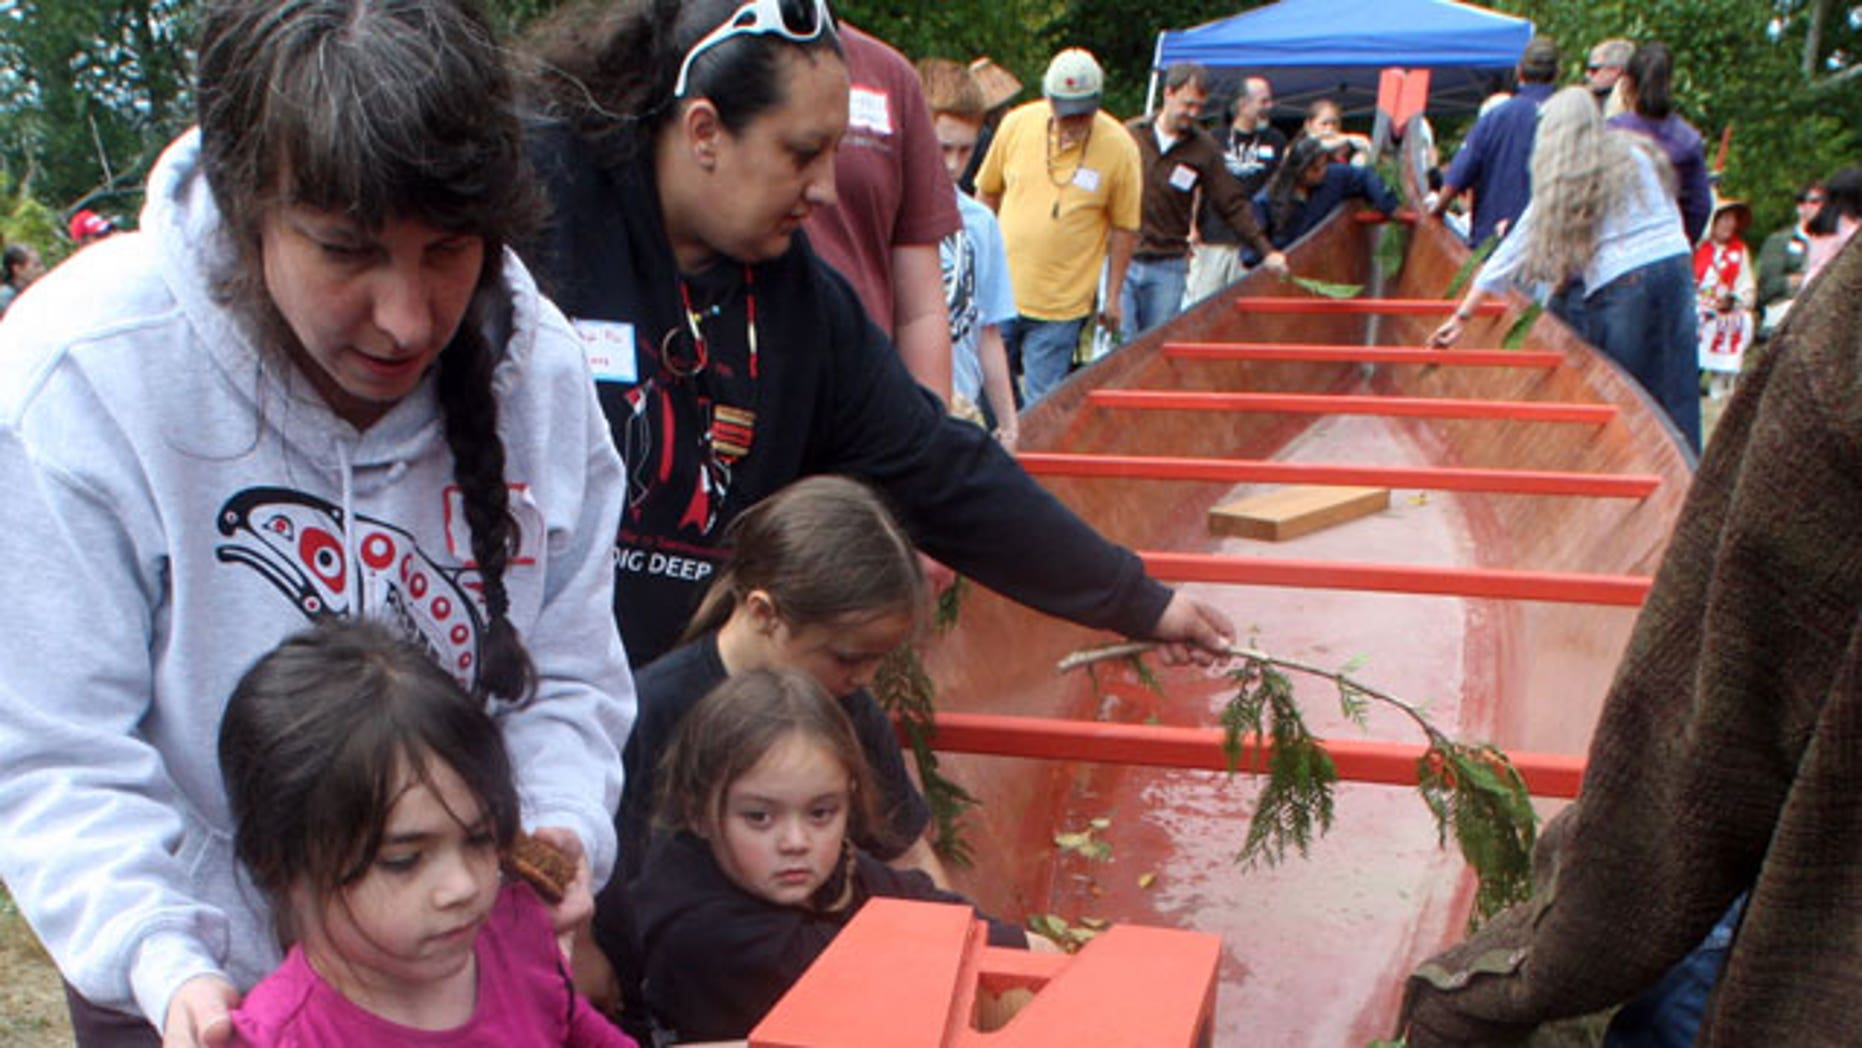 September 24: Mylee Wahlgren, 6, left, and her grandmother Donna Sinclair, of Washougal, Wash., bless the 36-foot replica canoe during the canoe reparation ceremony at Fort Columbia, near Chinook, Wash.